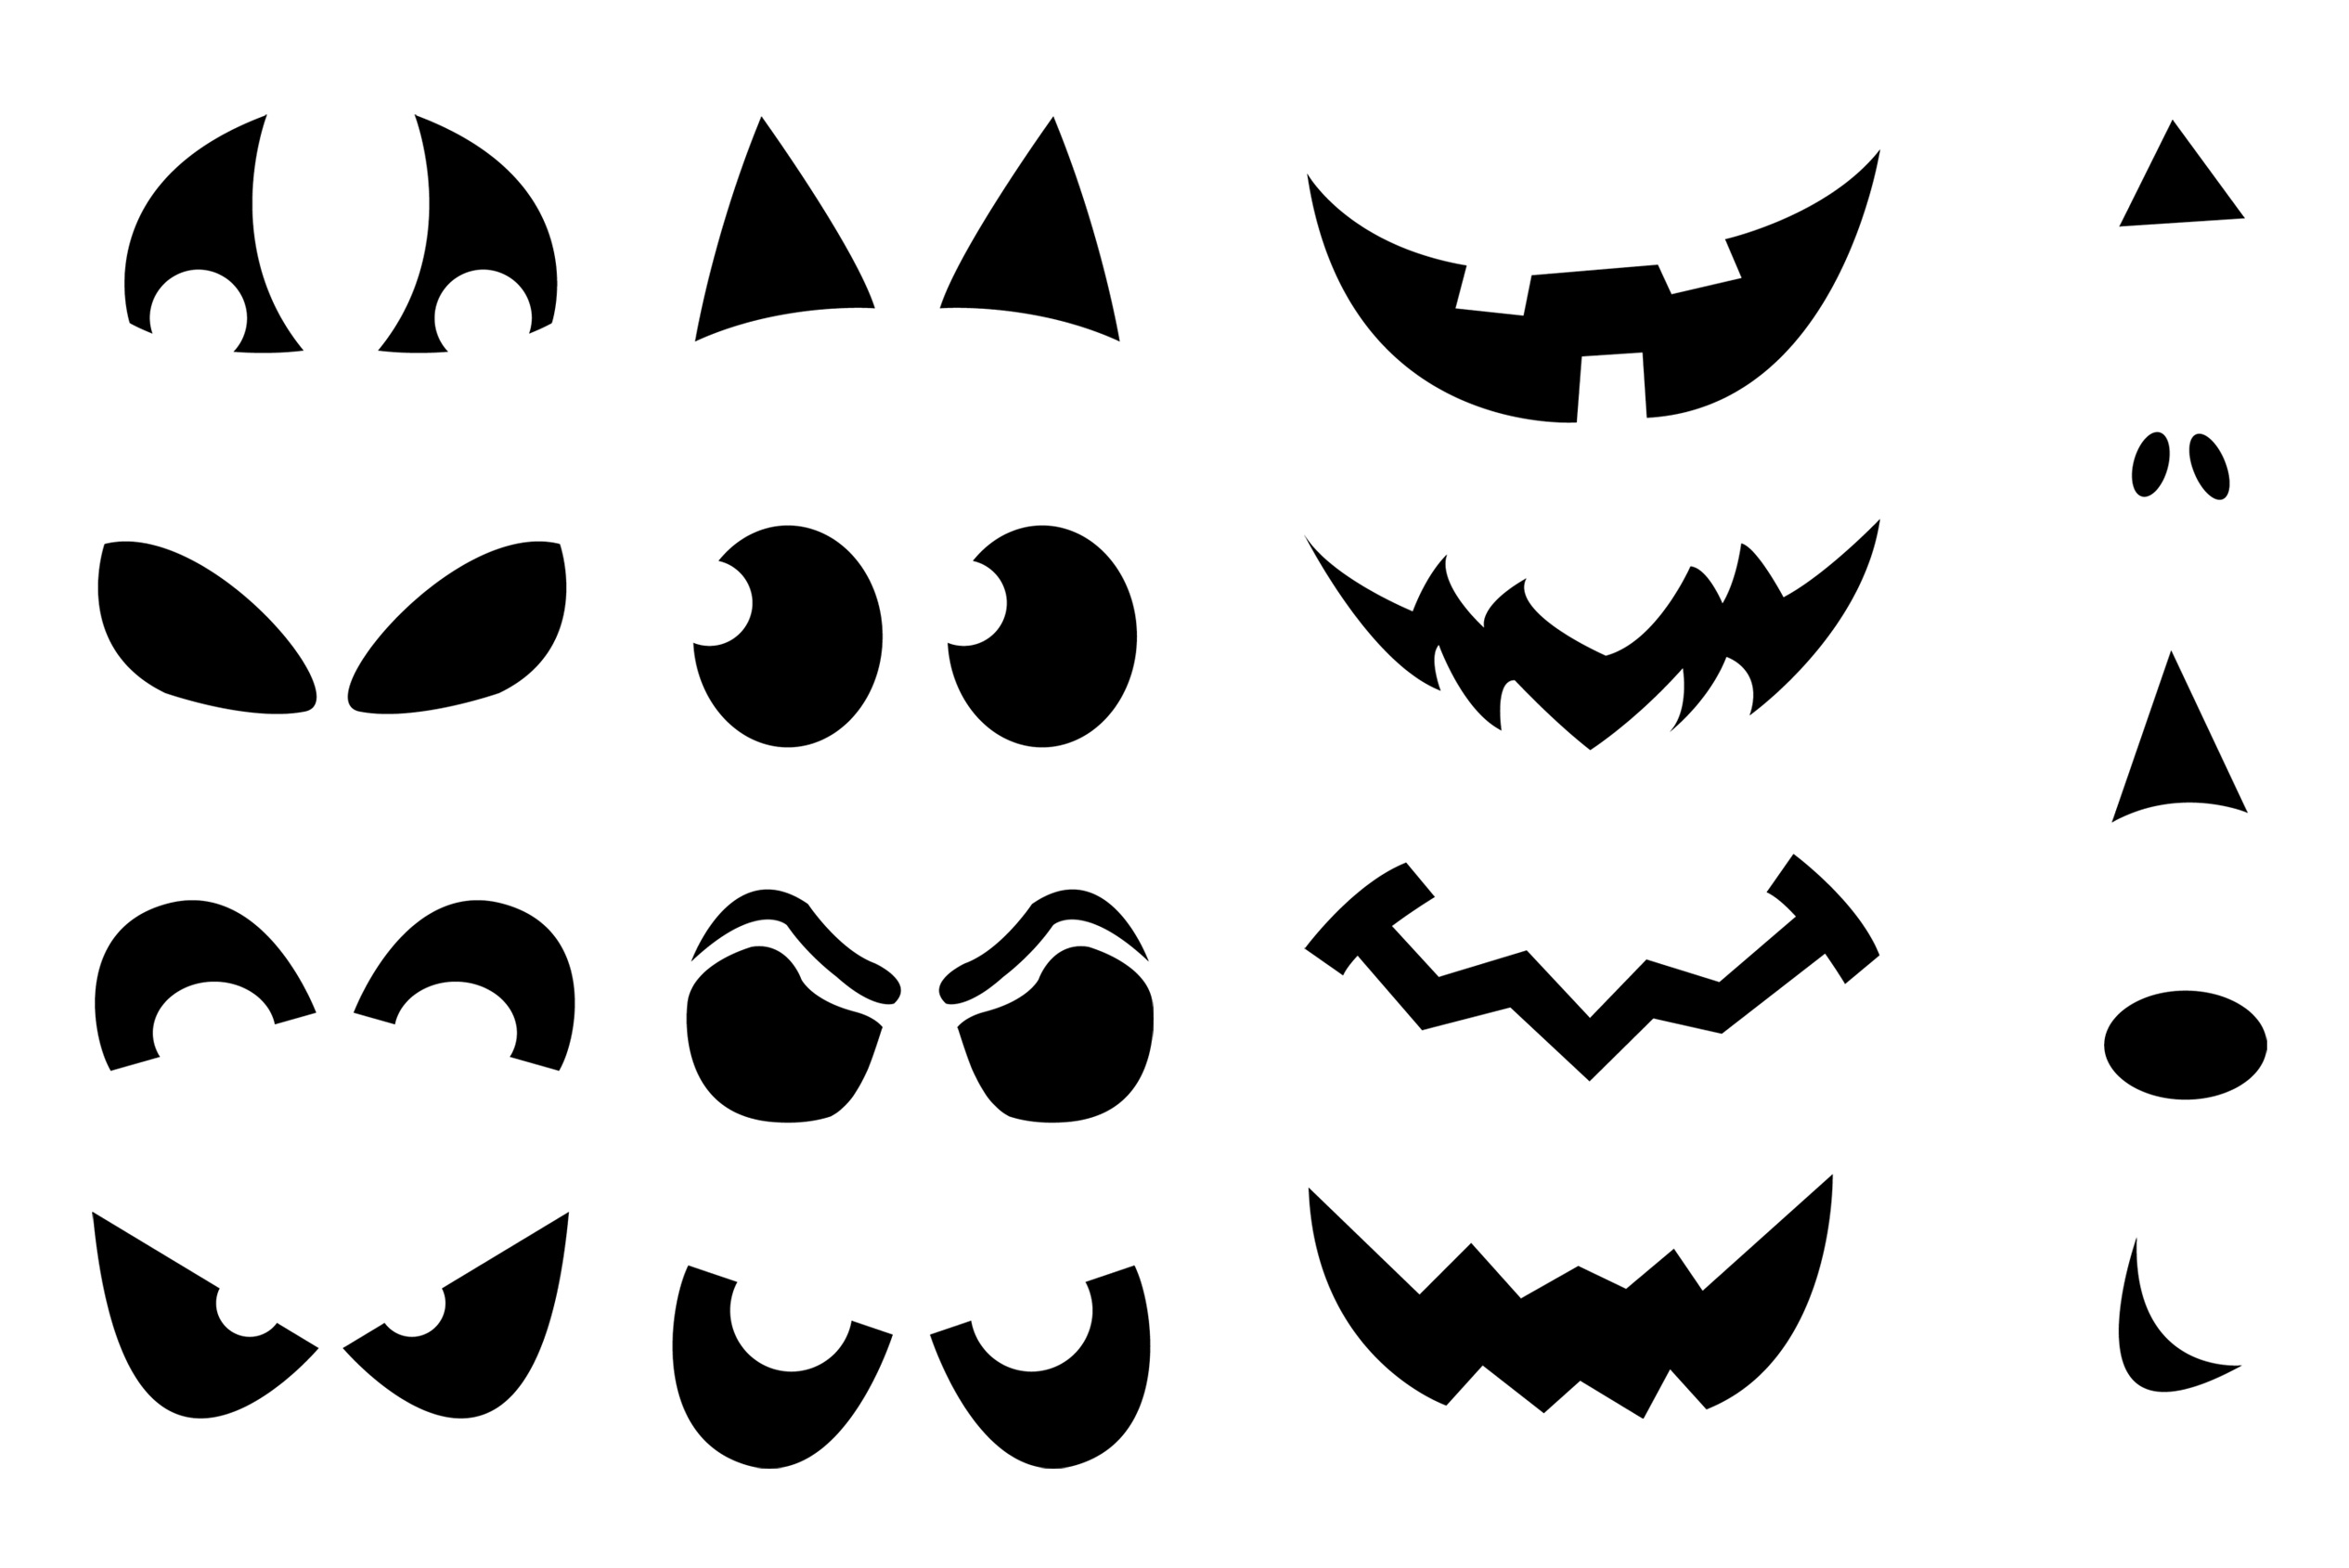 pumpkin images pumpkin drawing outline at getdrawings free download pumpkin images